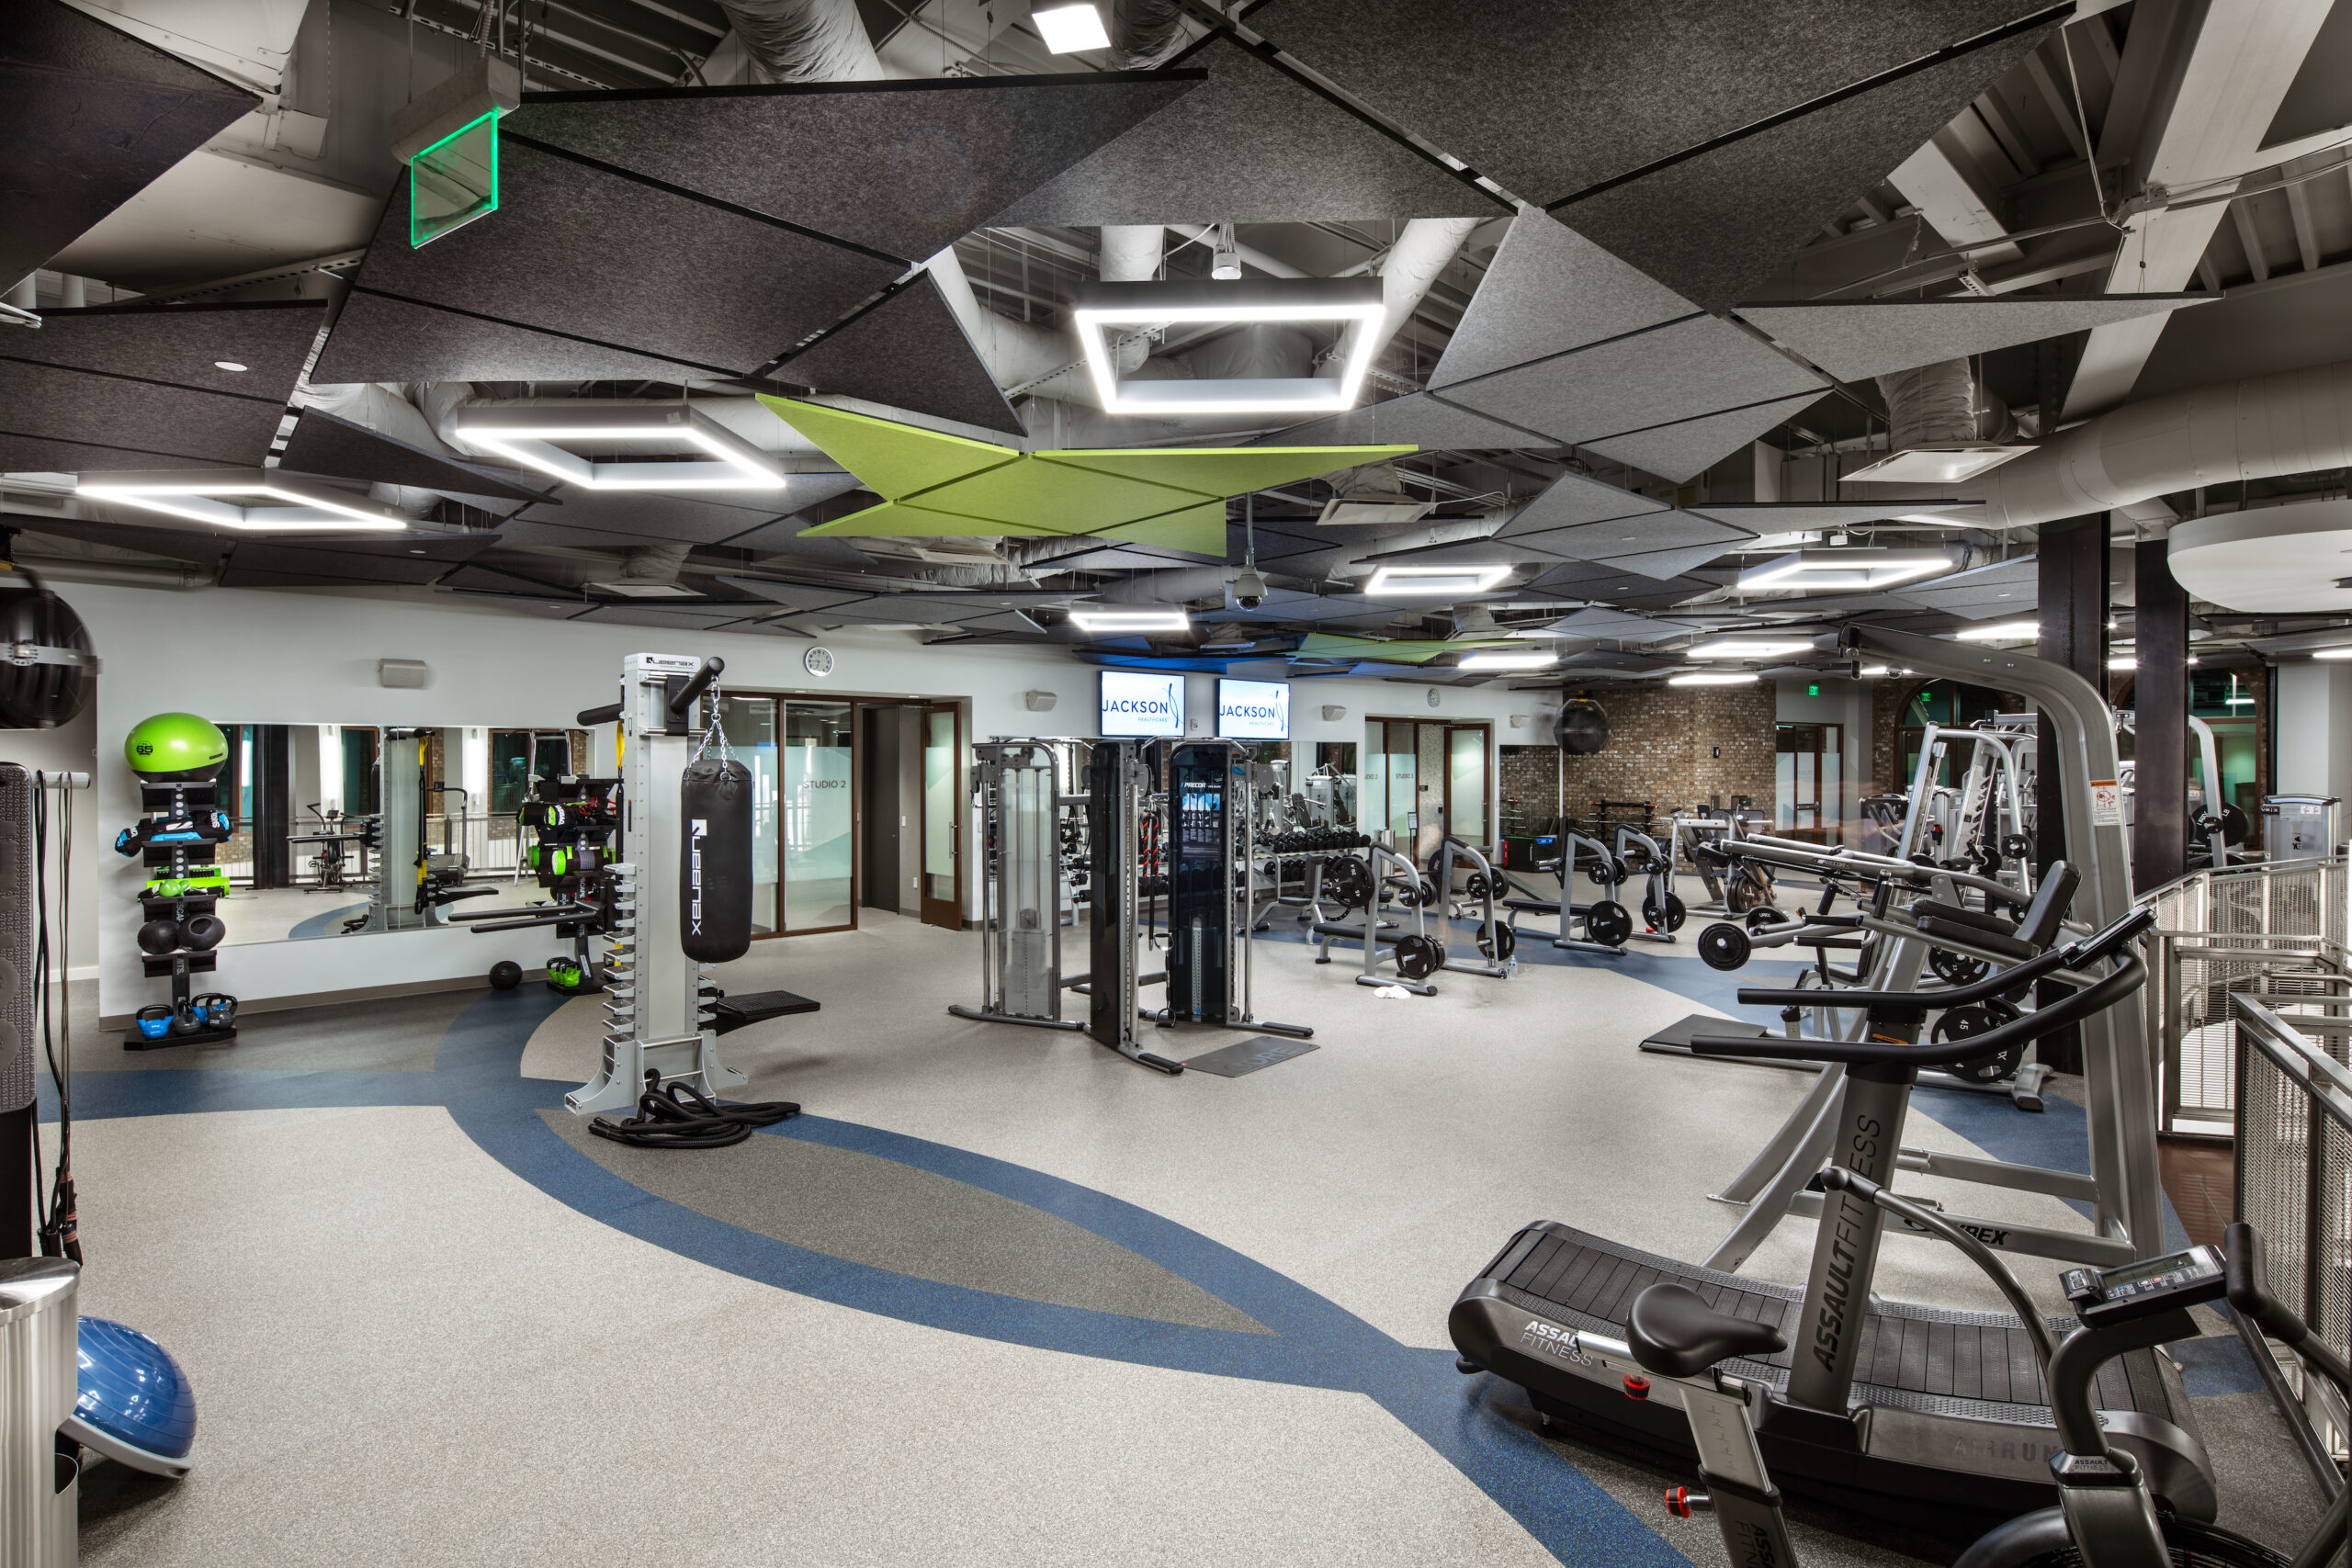 fitness facility with weights and cardio equipment